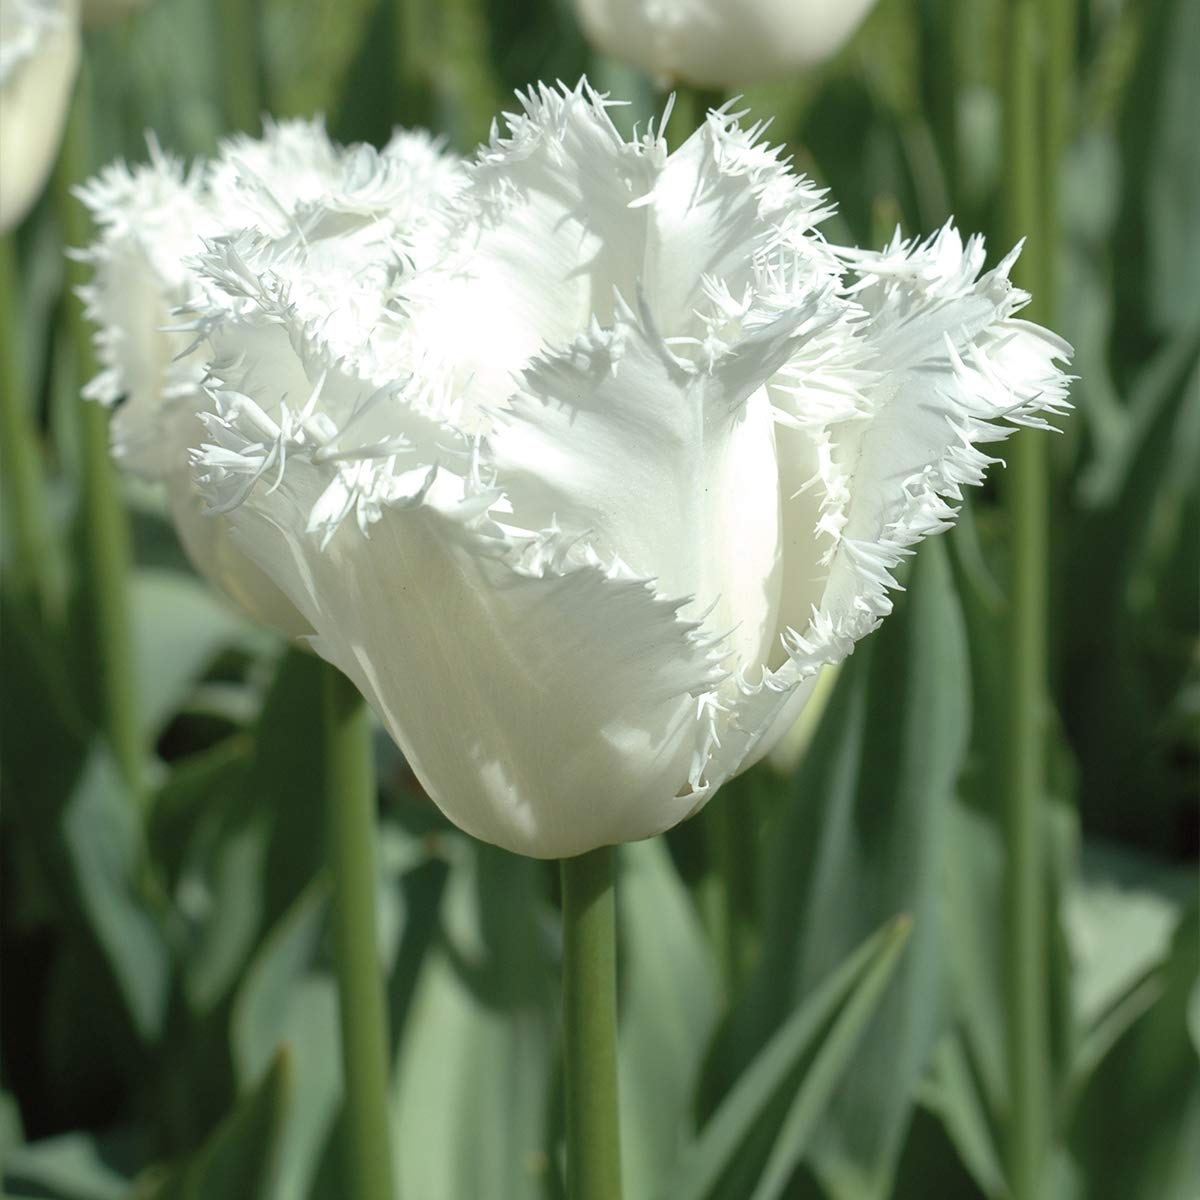 Burpee Honeymoon Tulip | 10 Large Flowering Fall Bulbs for Planting, White by Burpee